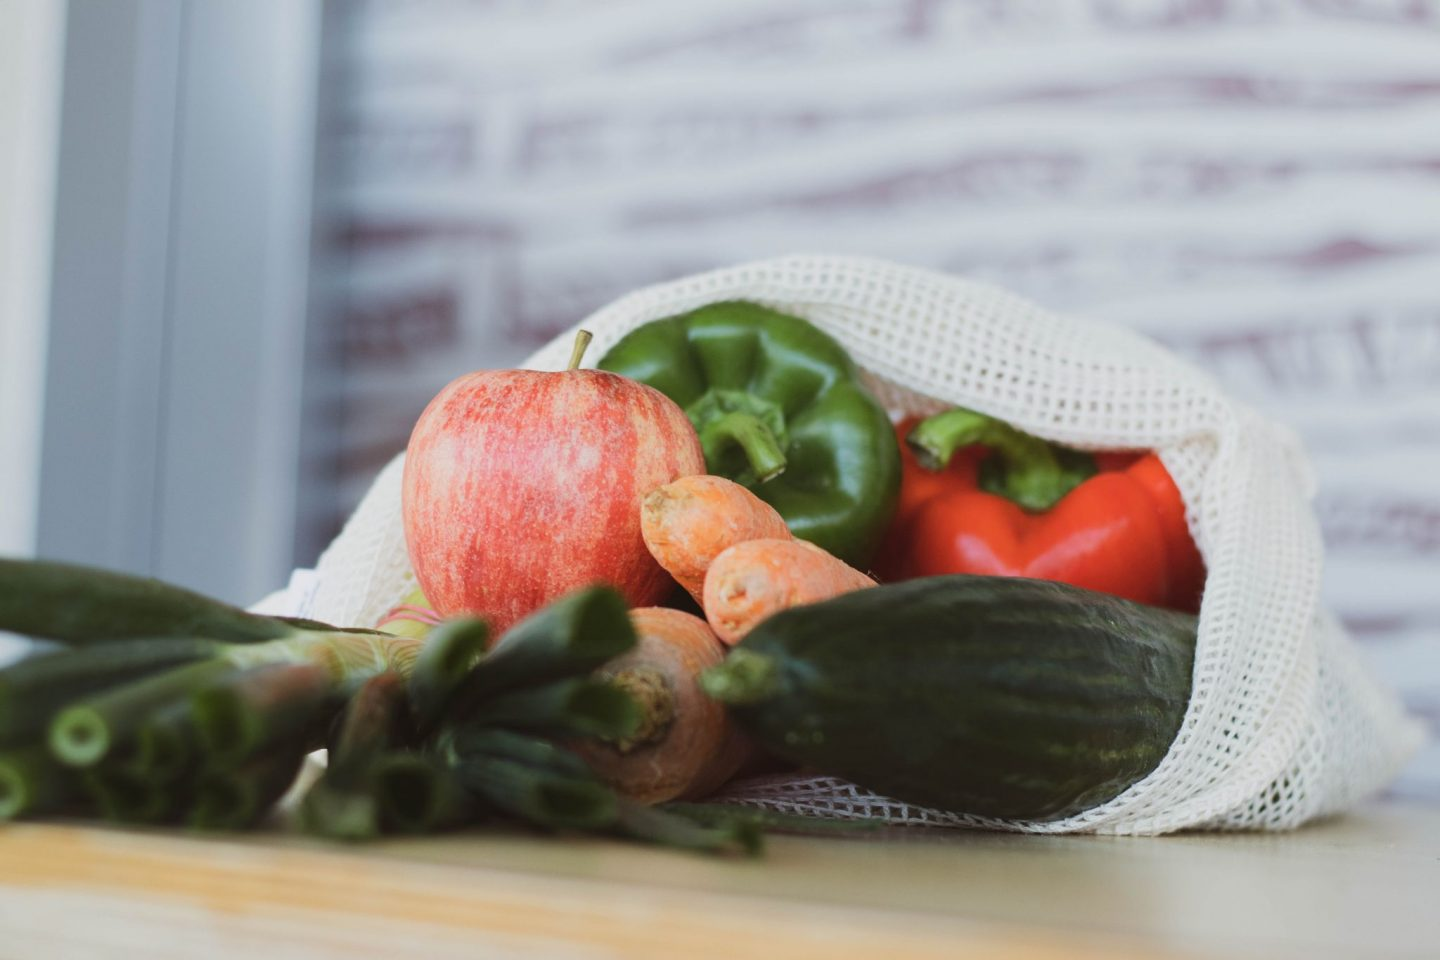 DELIVERY TIPS TO INTRODUCE ECO-FRIENDLY FOOD PACKAGING